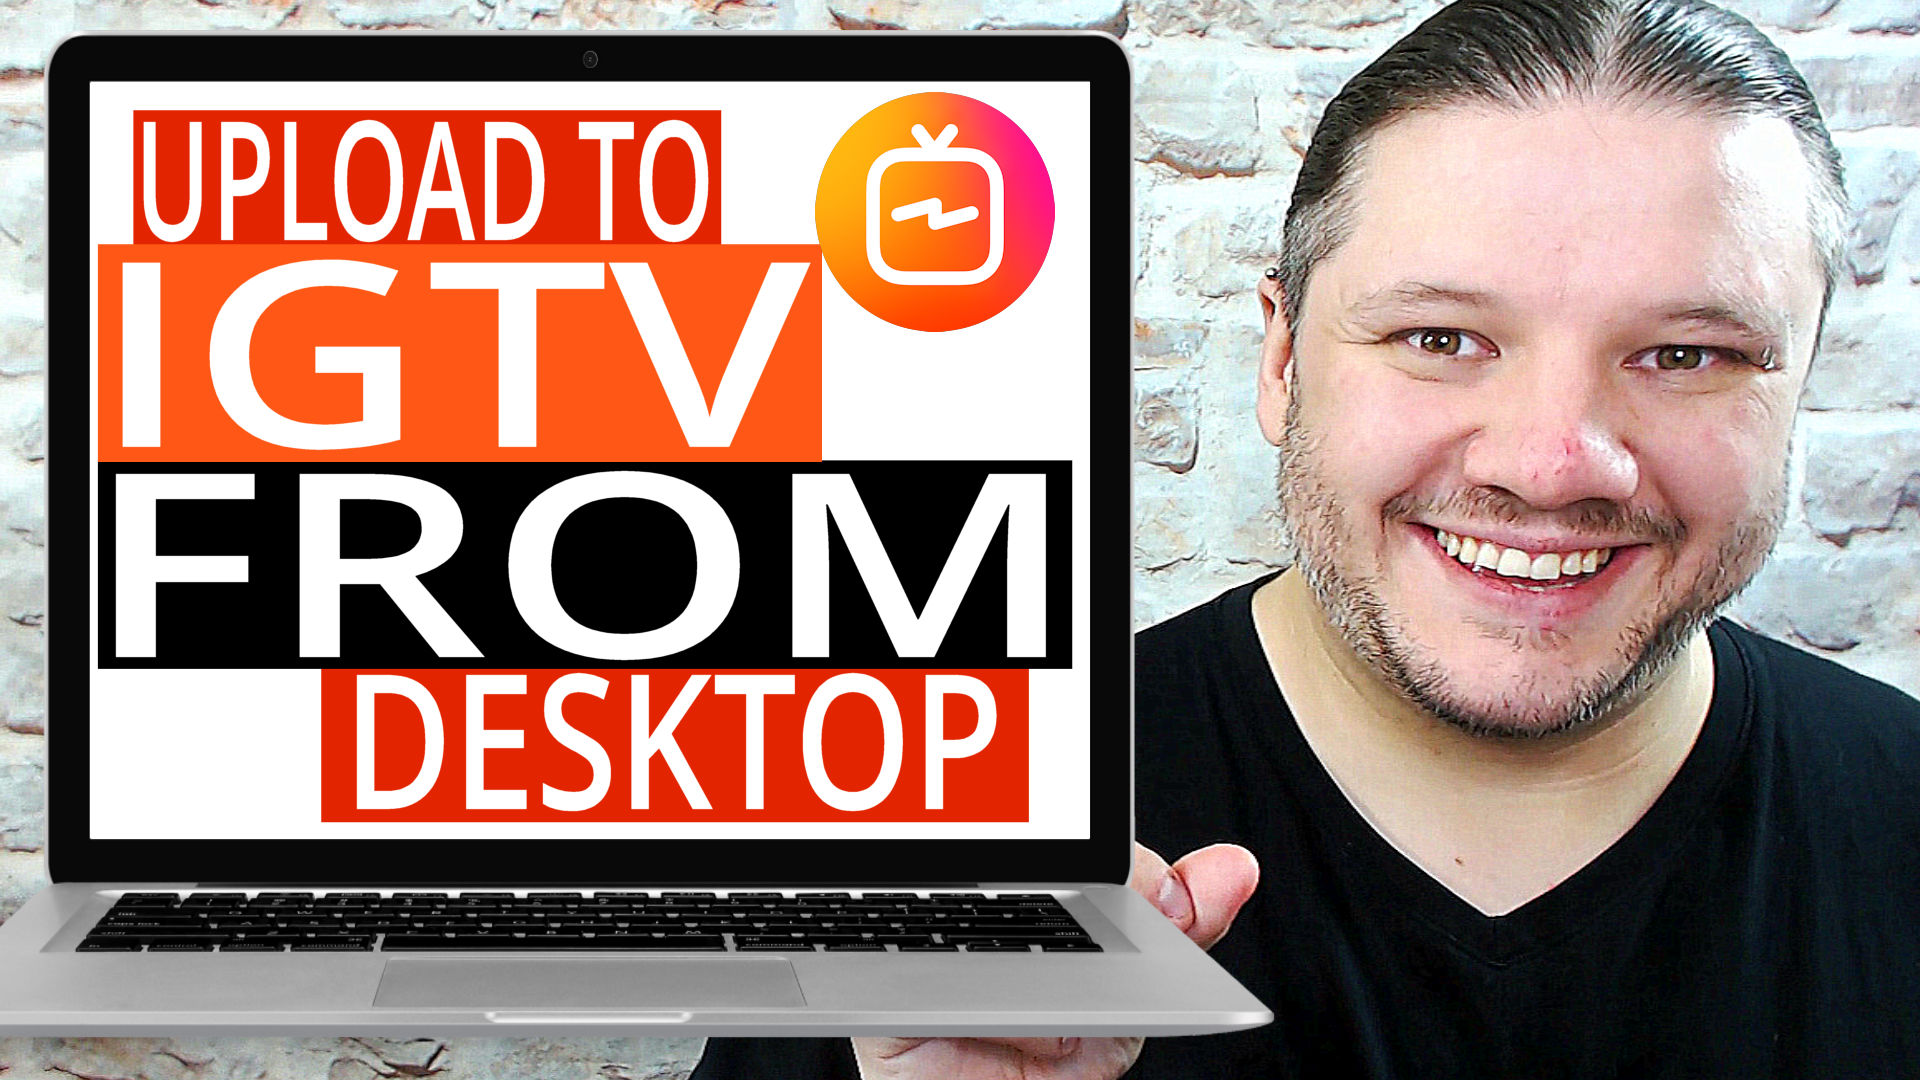 igtv from your desktop,igtv tutorial,How To Upload To IGTV from Desktop,Upload To IGTV from Desktop,how to upload to ig from desktop,upload to instagram from pc,upload to instagram from desktop,upload ig tv,upload ig tv from desktop,igtv upload step by step,igtv upload,igtv upload from desktip,igtv step by step,igtv step by step tutorial,how to use igtv step by step,upload to igtv,igtv,instagram tv tutorial,how to upload videos on igtv,instagram tv from pc